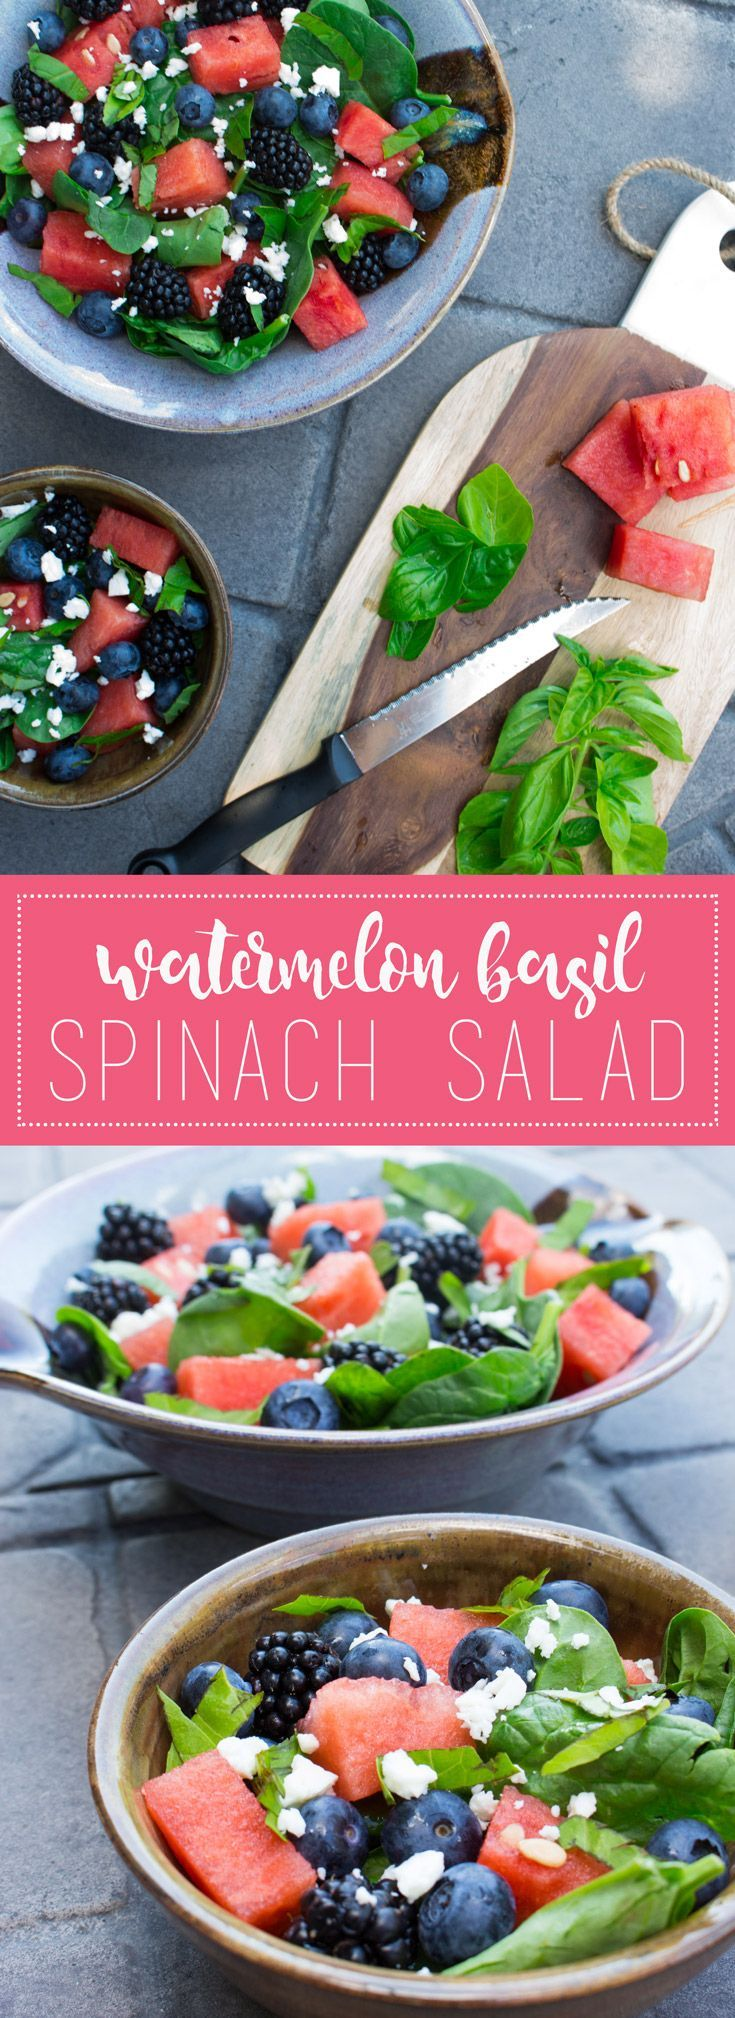 The freshest #summer #salad - crisp, cold, delicious... not to mention pretty! http://www.savourandshine.com/watermelon-basil-spinach-salad/